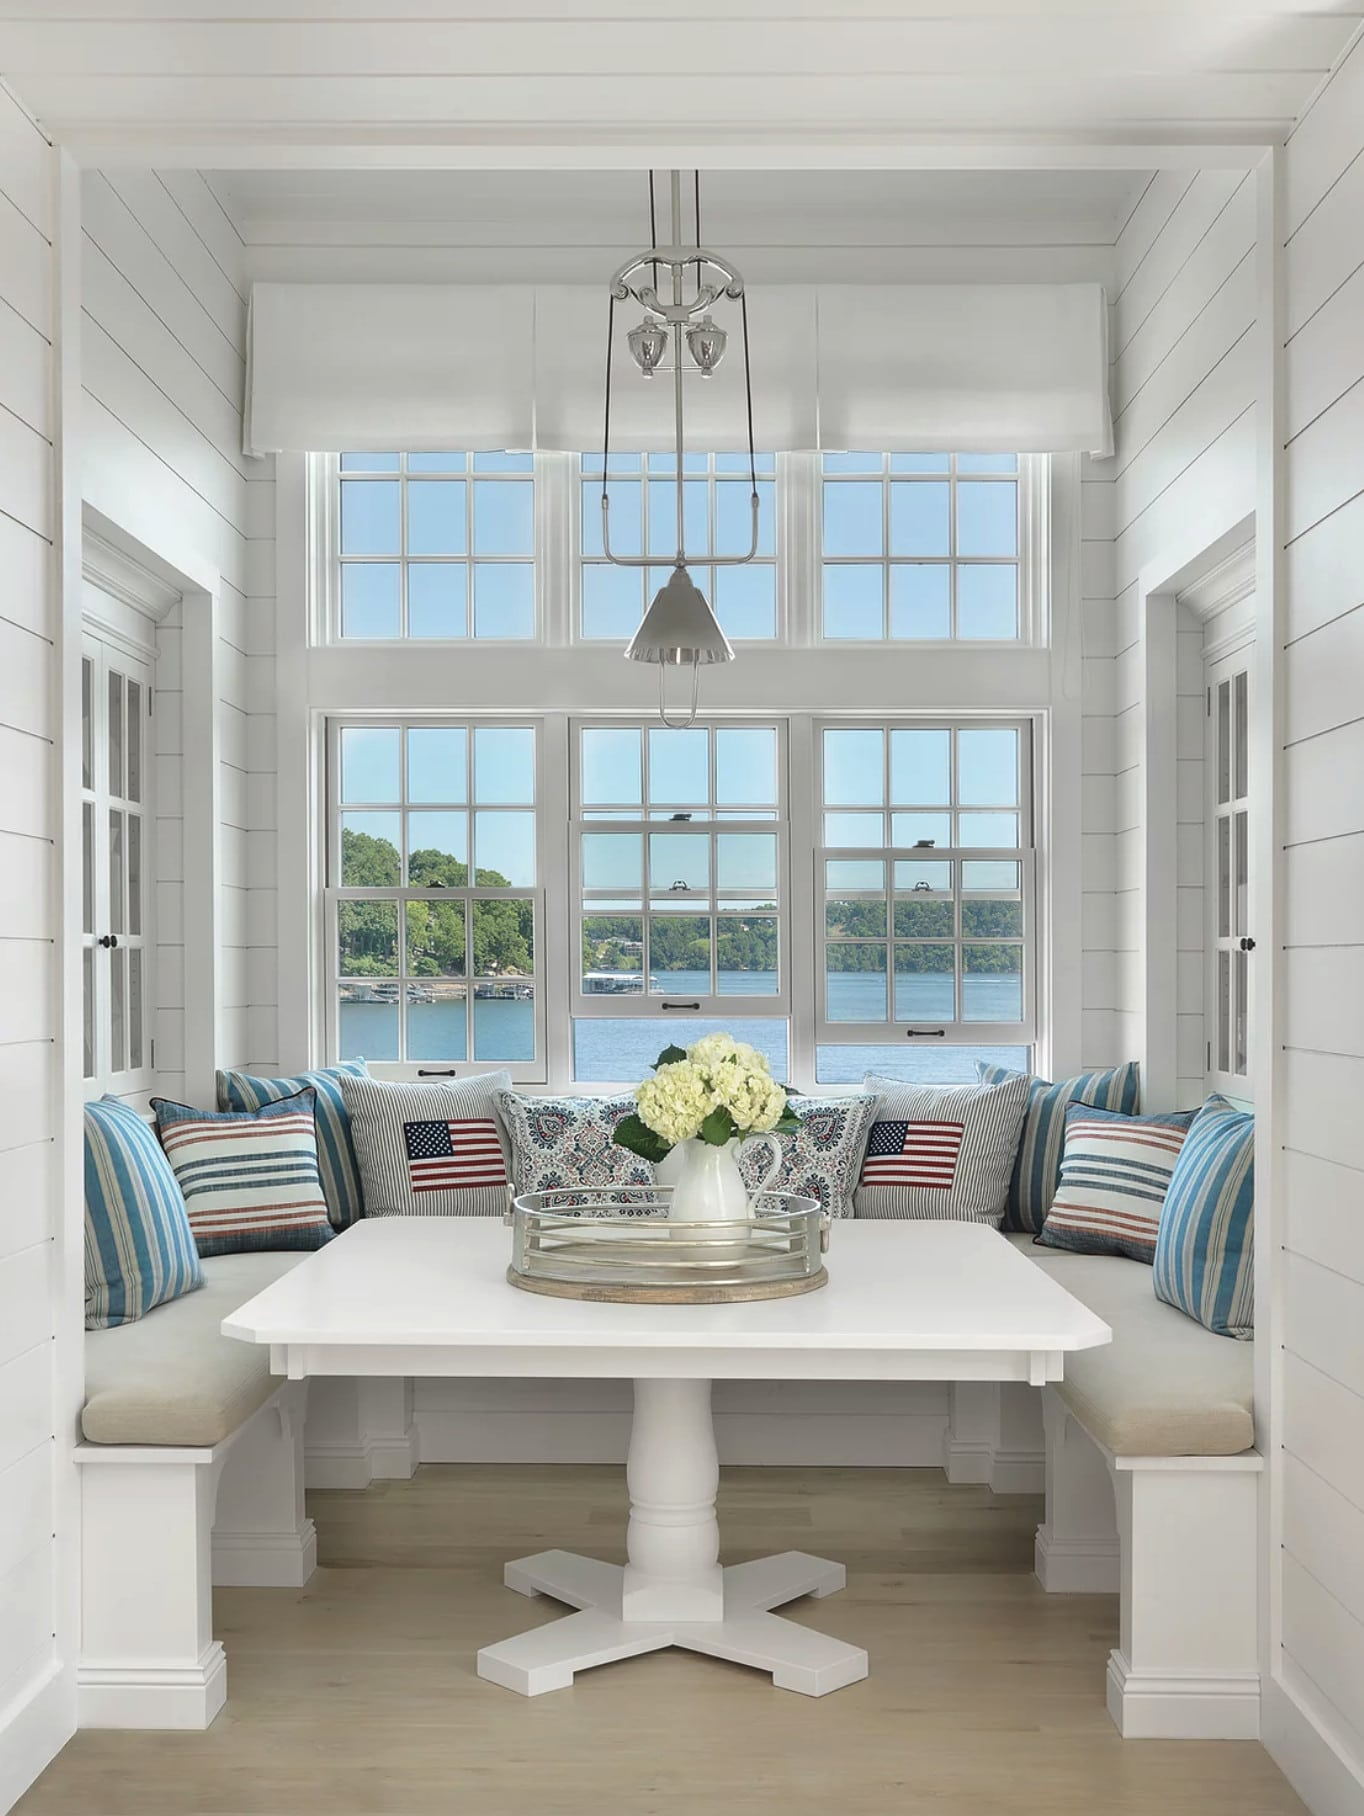 Nantucket house tour by Amy Studebaker Interior Design - Alise O'Brien Photography dining nook with banquette